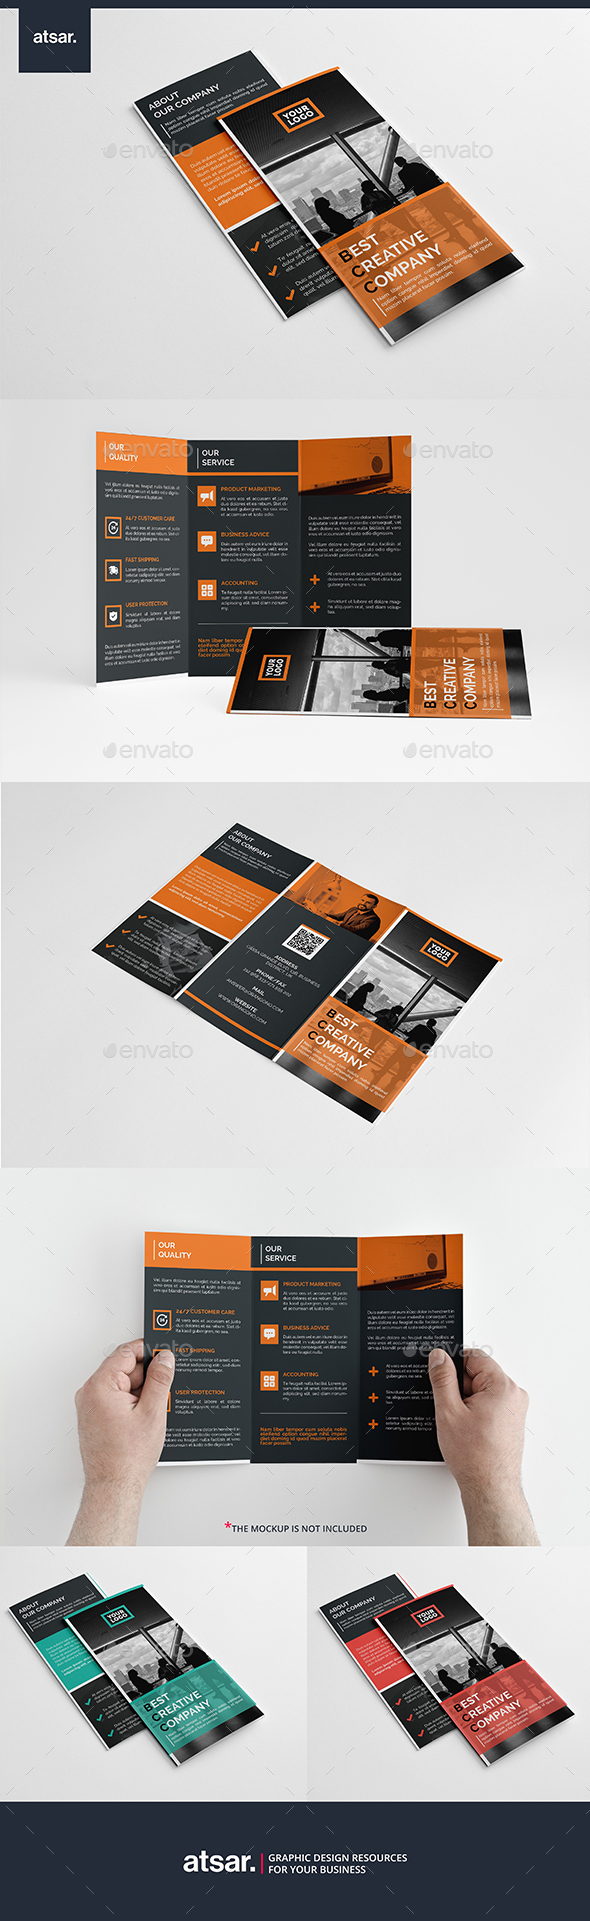 Squaro Trifold Brochure - Corporate Brochures